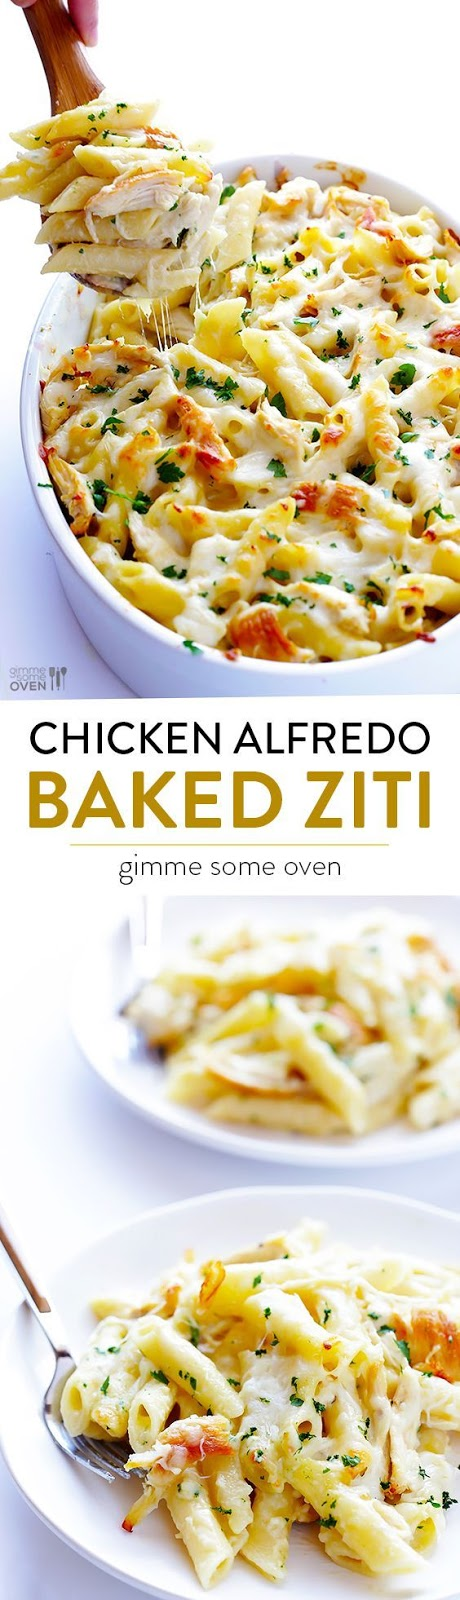 ★★★★☆ 7561 ratings | CHICKEN ALFREDO BAKED ZITI #HEALTHYFOOD #EASYRECIPES #DINNER #LAUCH #DELICIOUS #EASY #HOLIDAYS #RECIPE #CHICKEN #ALFREDO #BAKED #ZITI